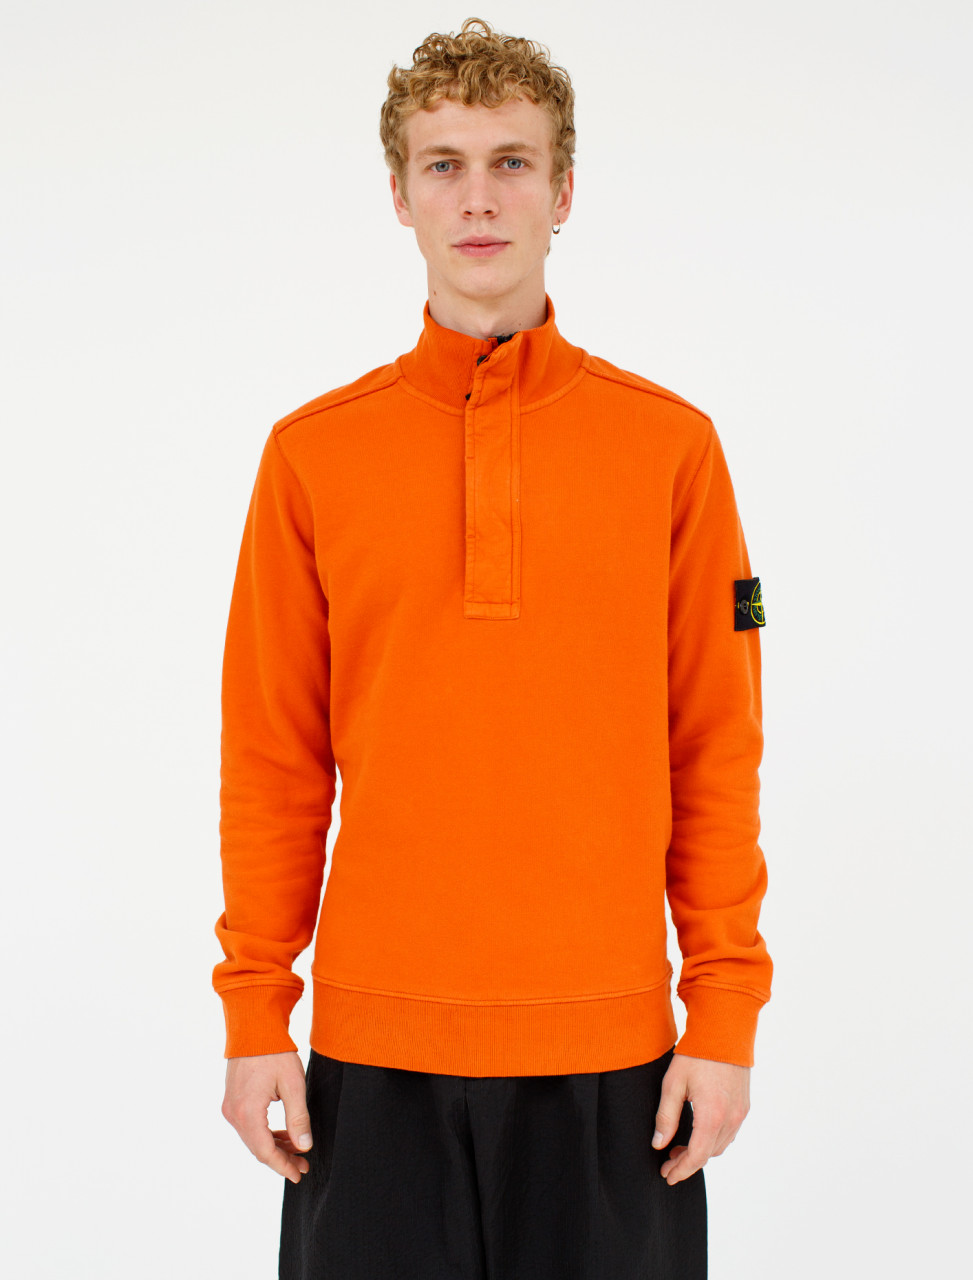 Stone Island Sweatshirt in Orange 1